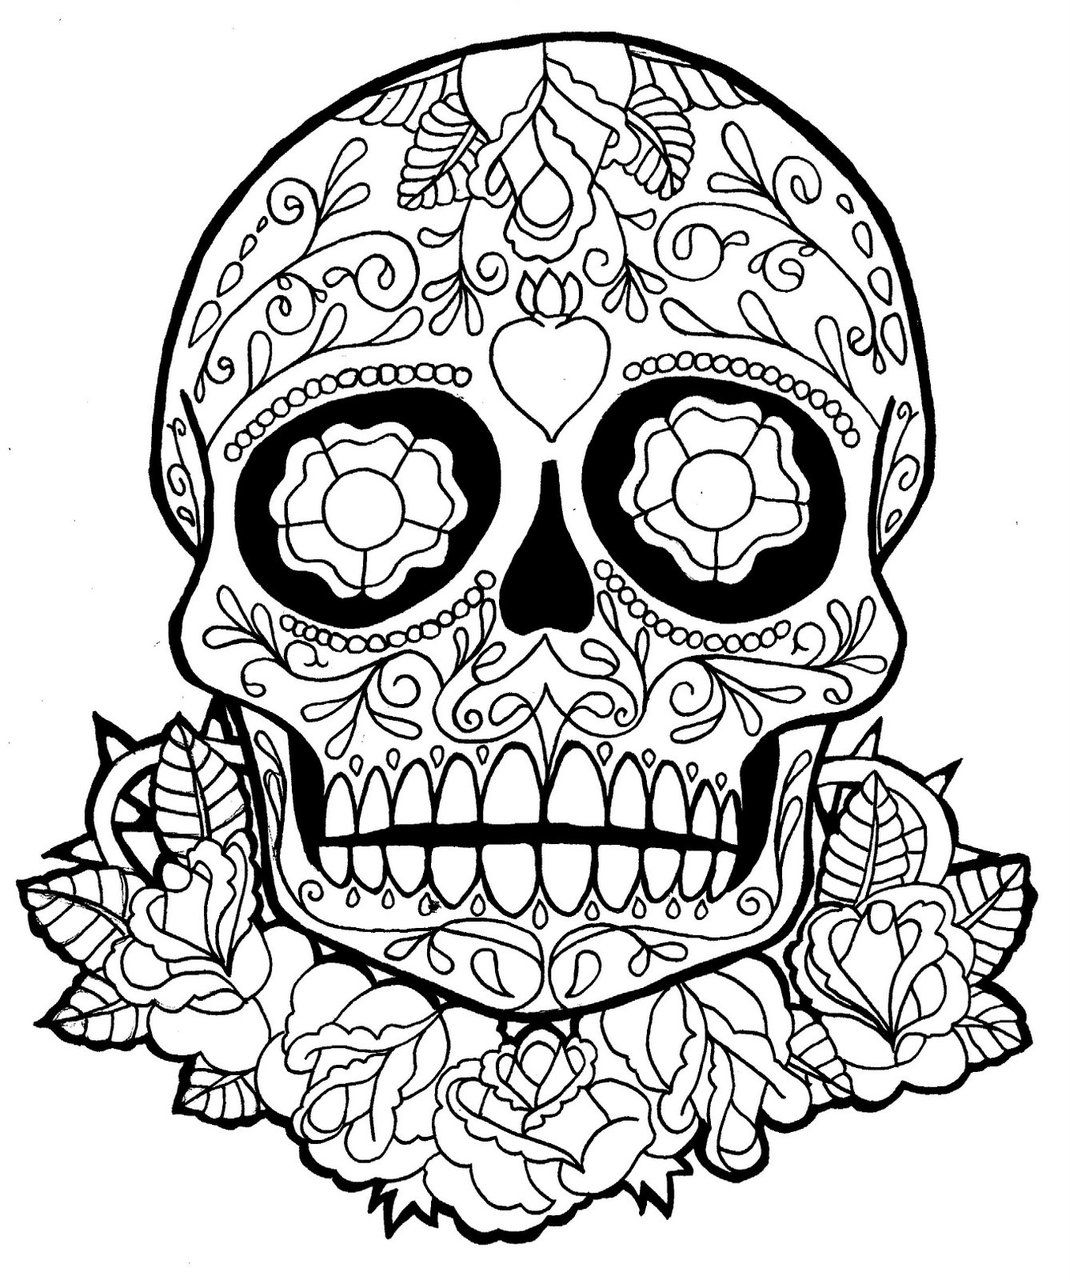 Skull Coloring Pages for Teen | Sugar Skull Dia De Los Muertos ...